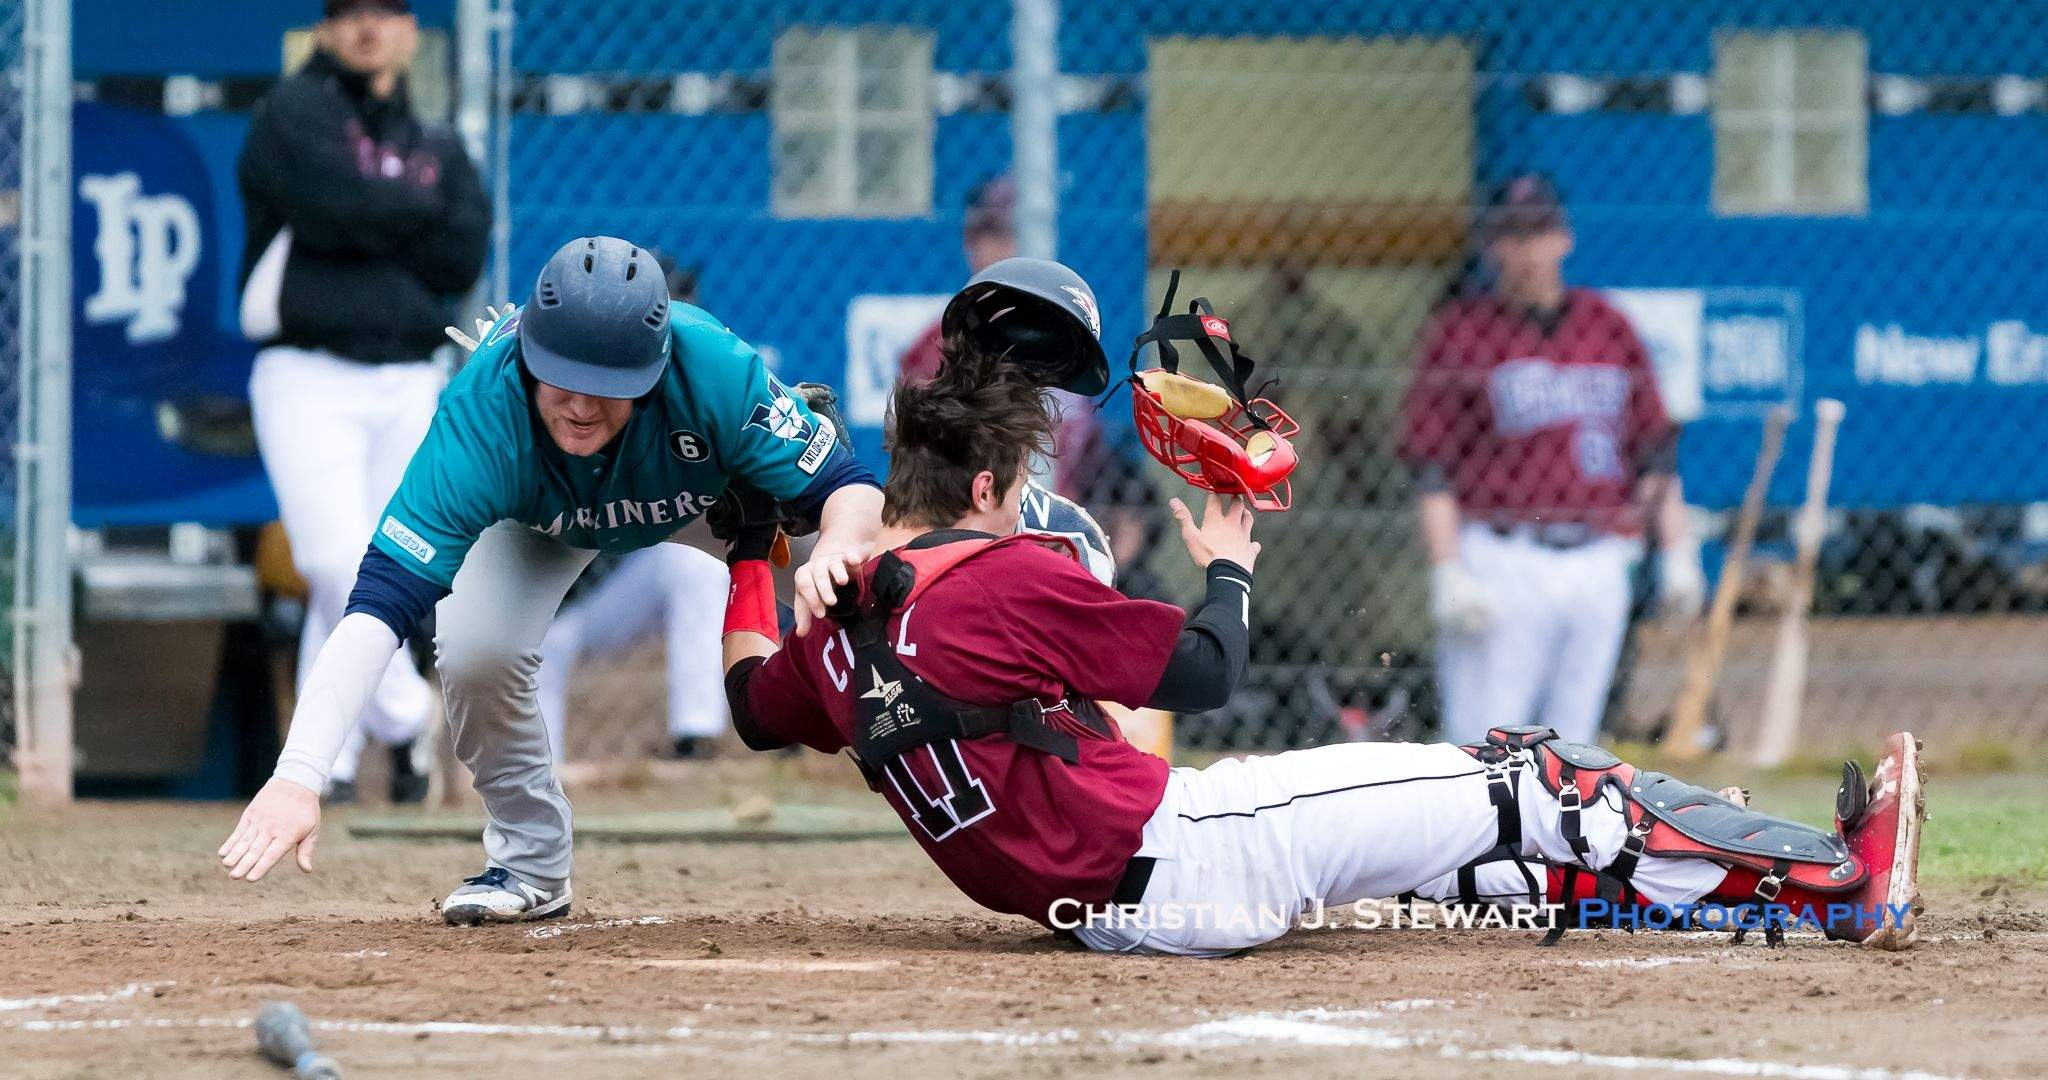 Victoria Eagles Catcher Jayden Cull would be bowled over by the Mariners' Bryce Franklin (17) on this play in the first inning Tuesday, but would hang on to the ball and make the tag to get the out at home (Photo: Christian J. Stewart)